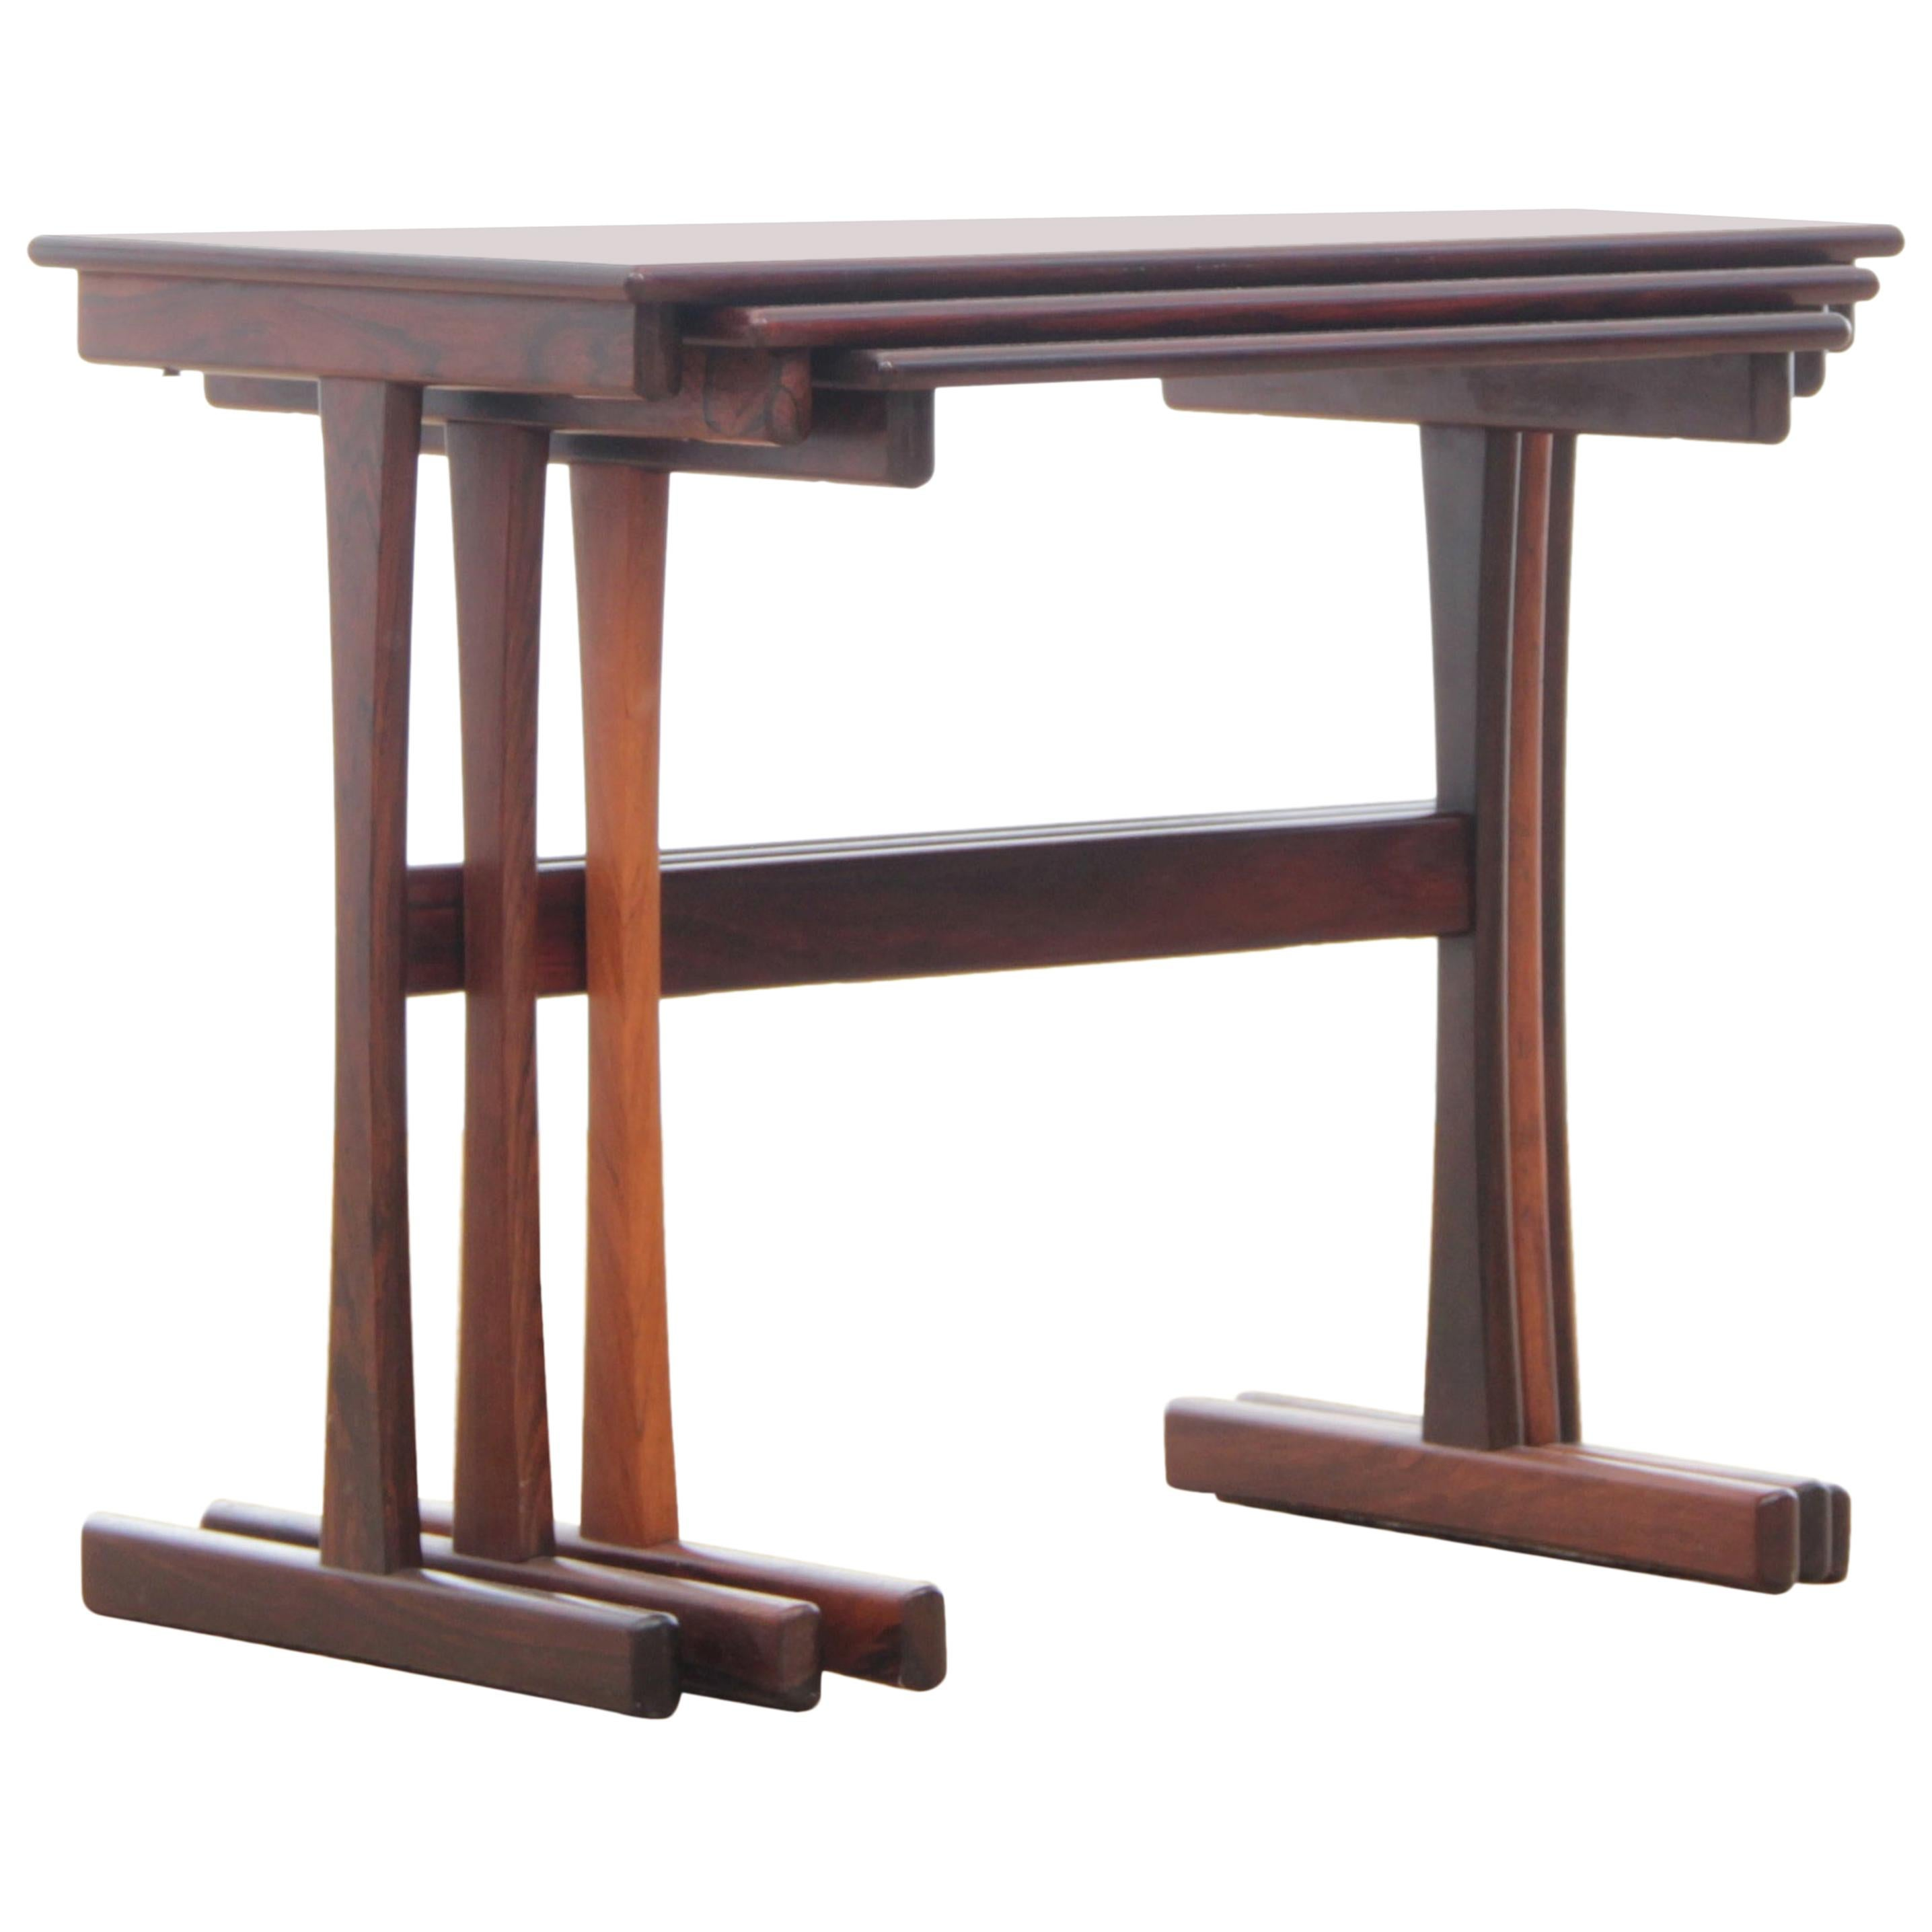 Image of: Mid Century Modern Scandinavian Nesting Tables In Rosewood For Sale At 1stdibs